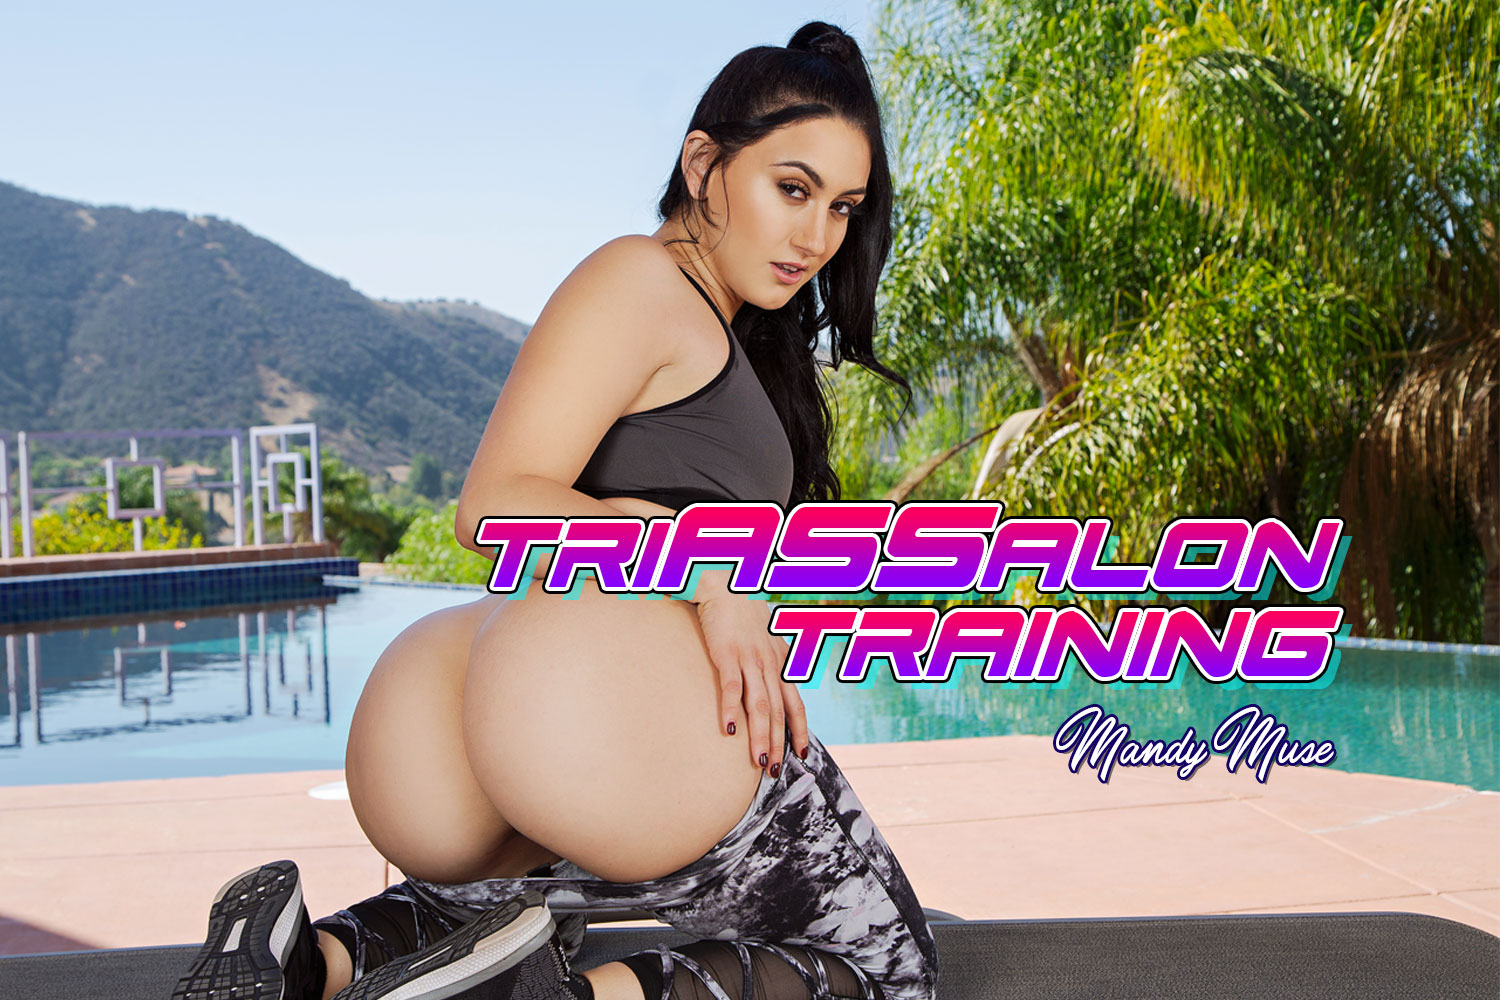 Triassalon Training VR Porn Video